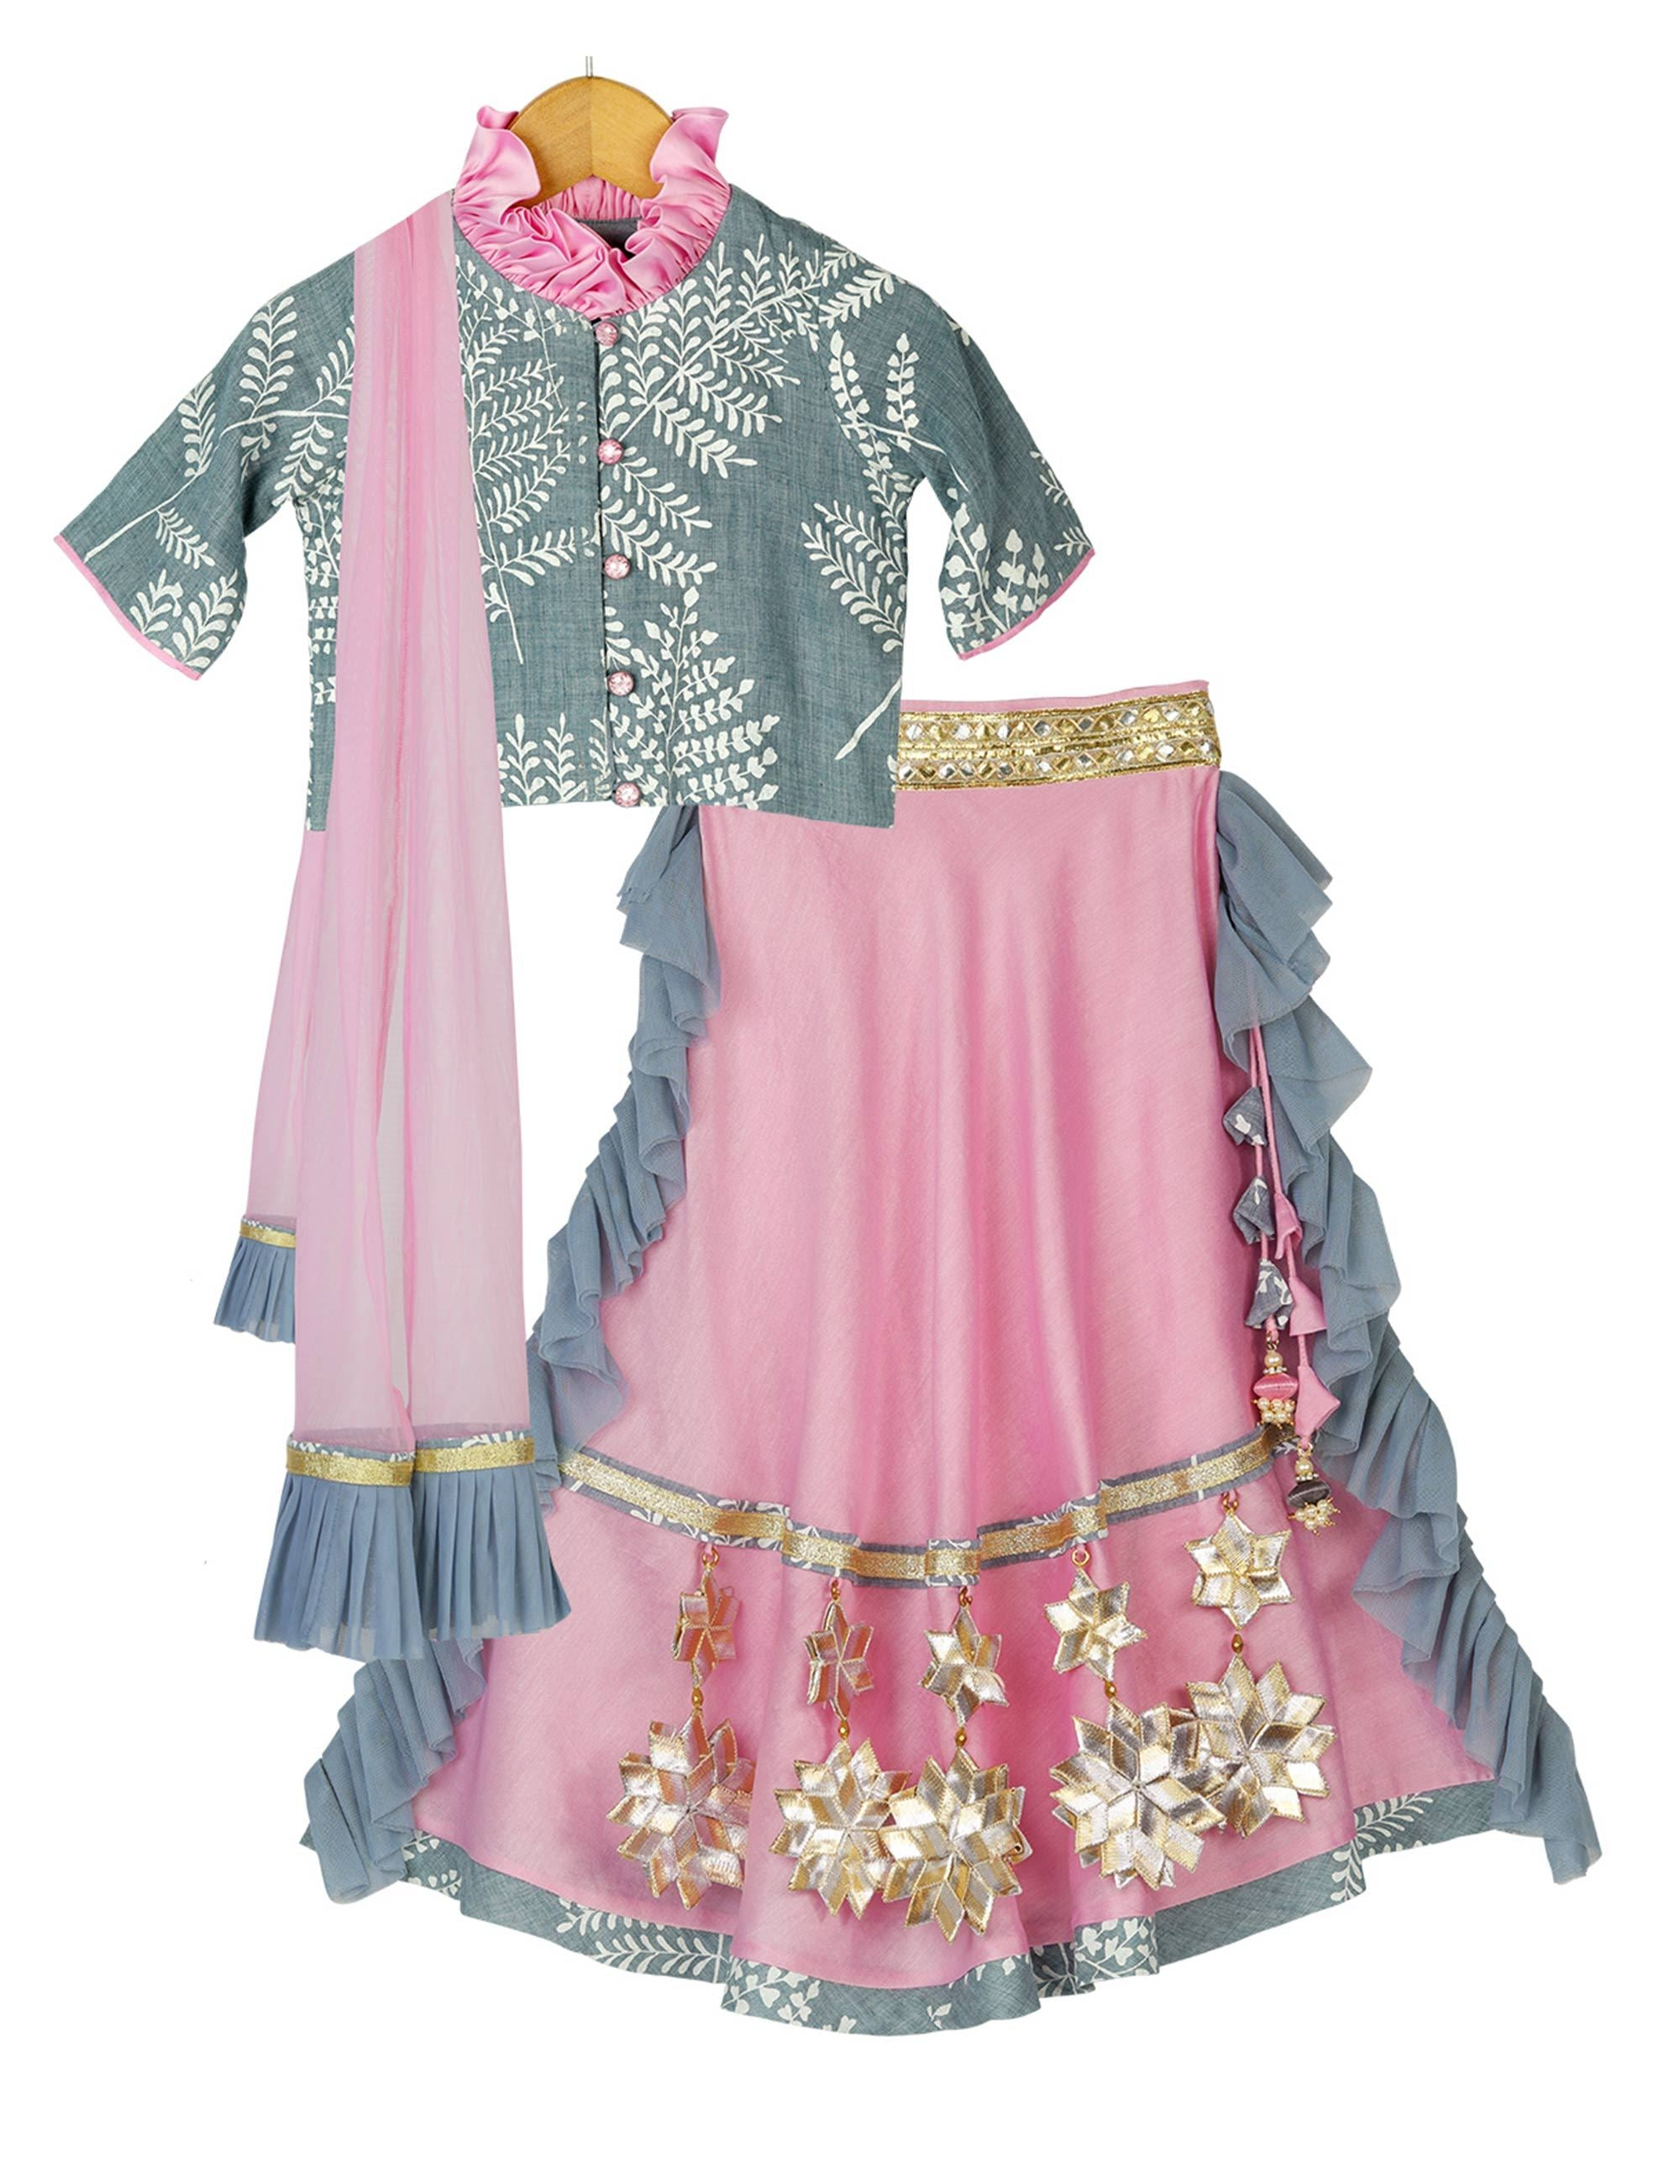 Starry Glitter Lehenga Choli in Pink and Blue Colour for Girls